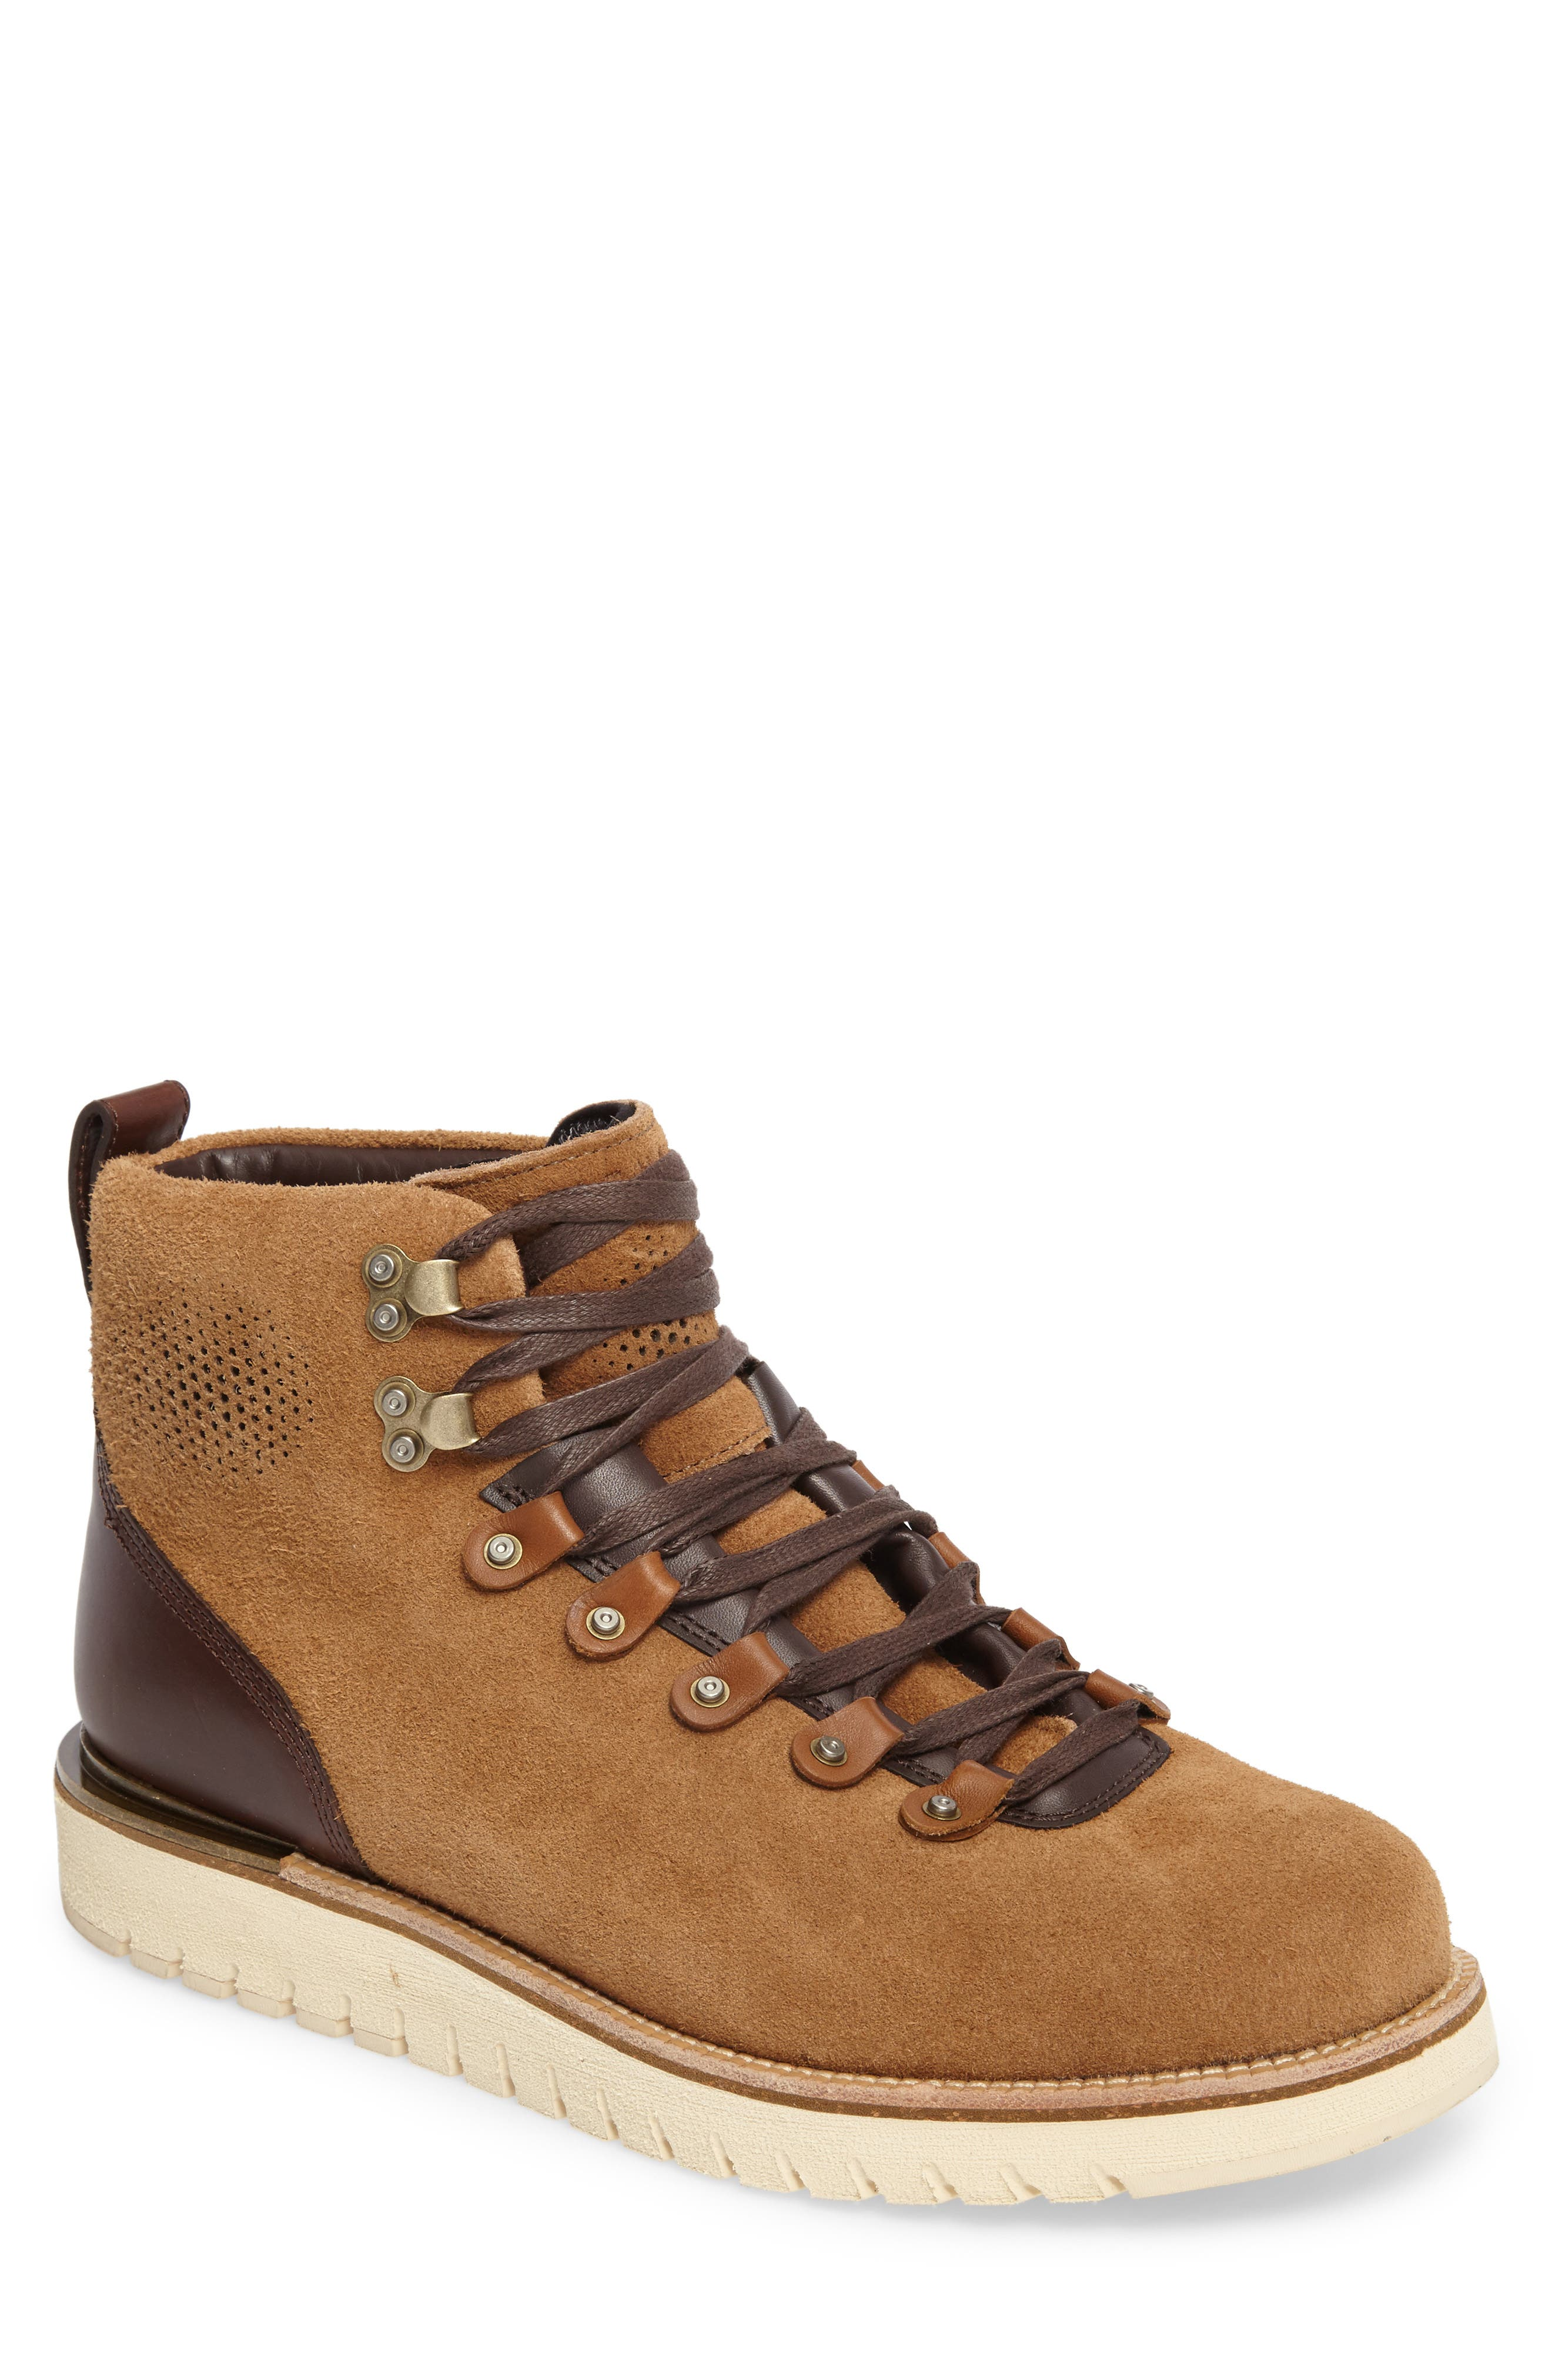 Cole Haan Grand Explorer Alpine Waterproof Hiking Boot (Men)